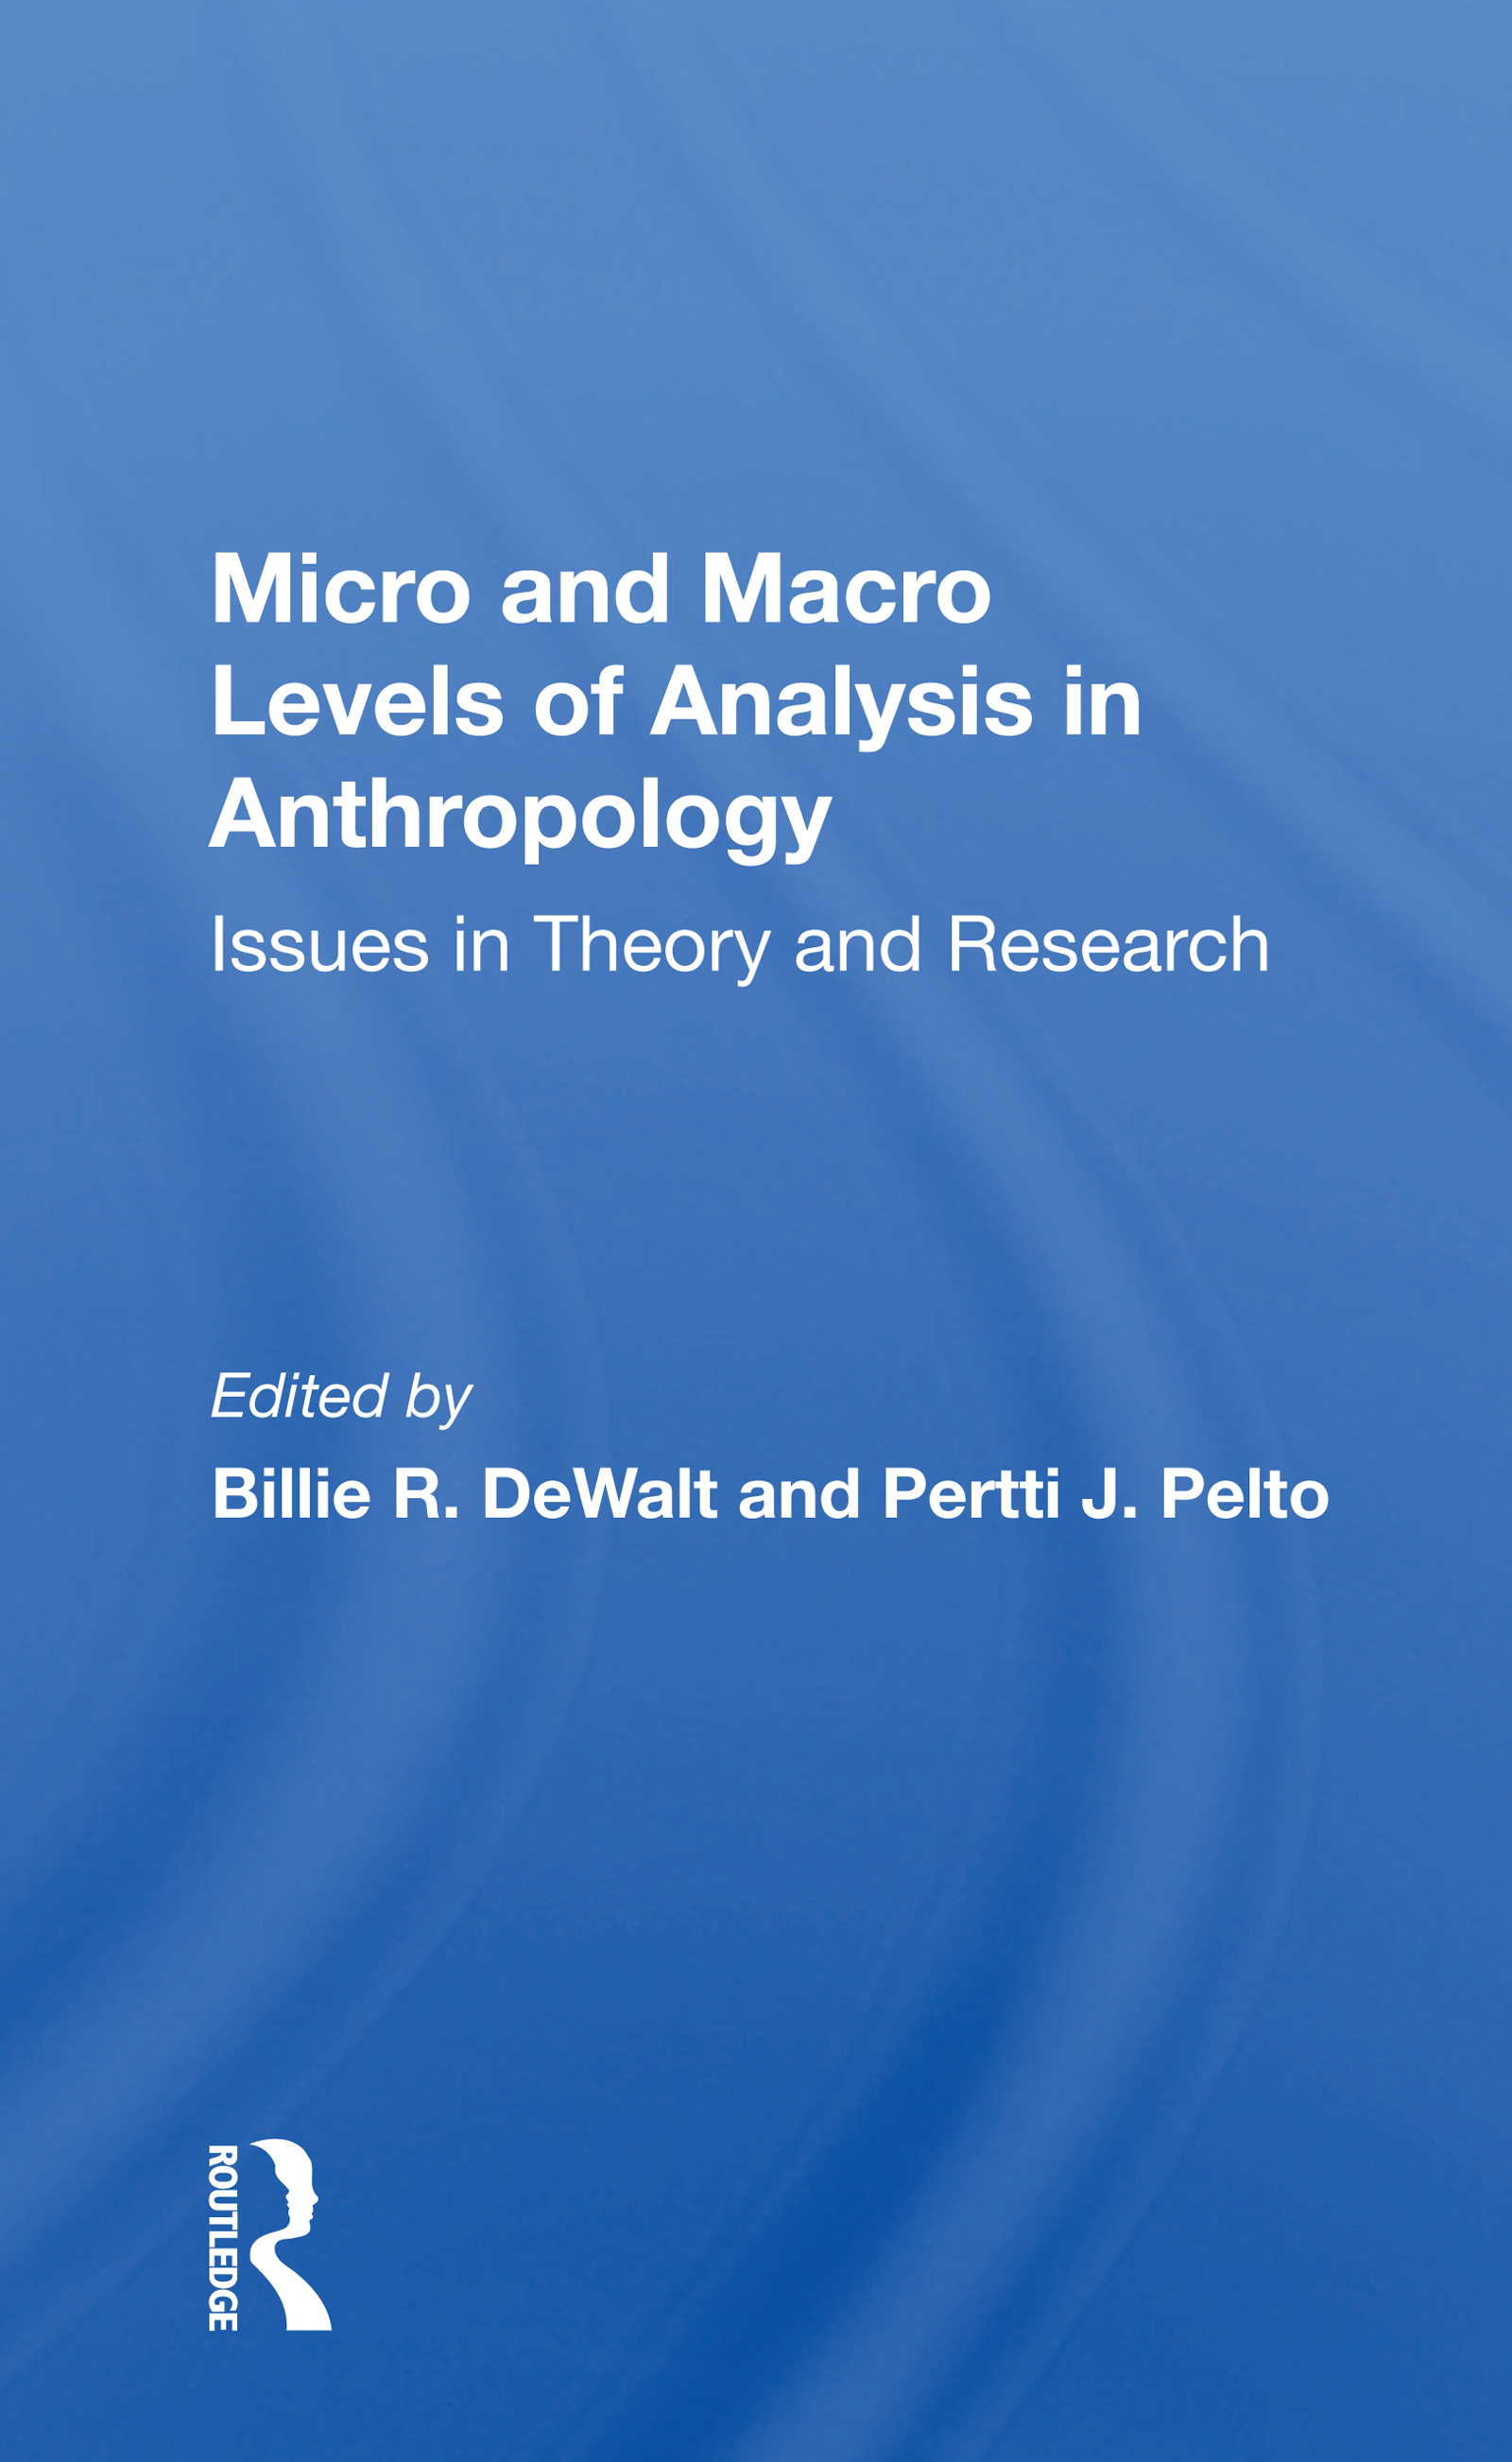 Micro and Macro Levels of Analysis in Anthropology